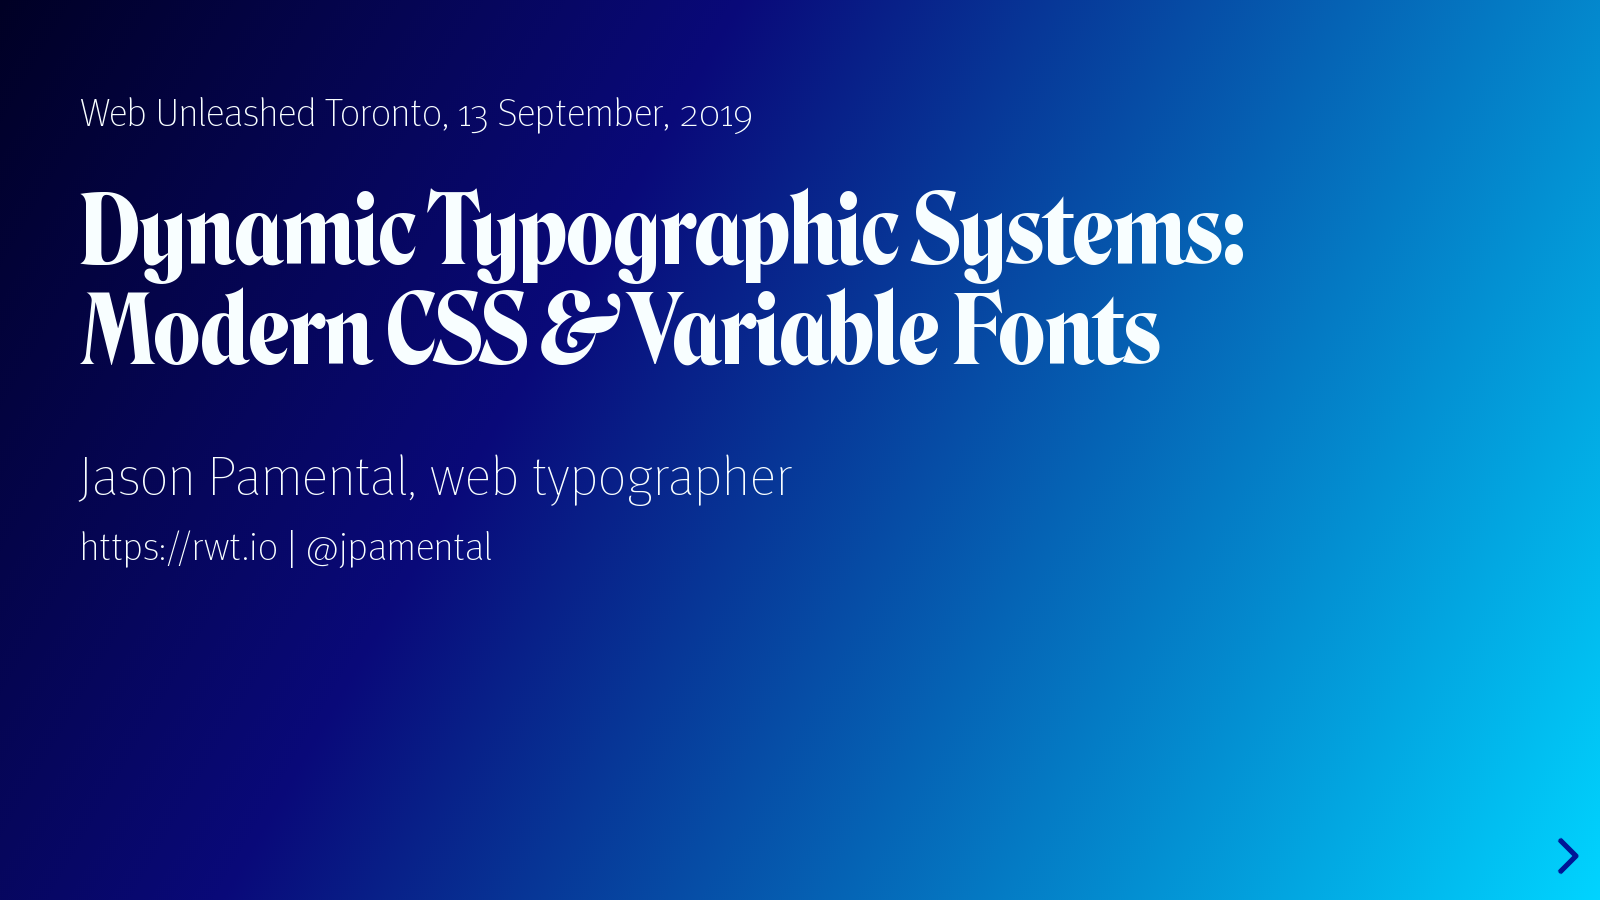 Dynamic Typographic Systems: Modern CSS & Variable Fonts